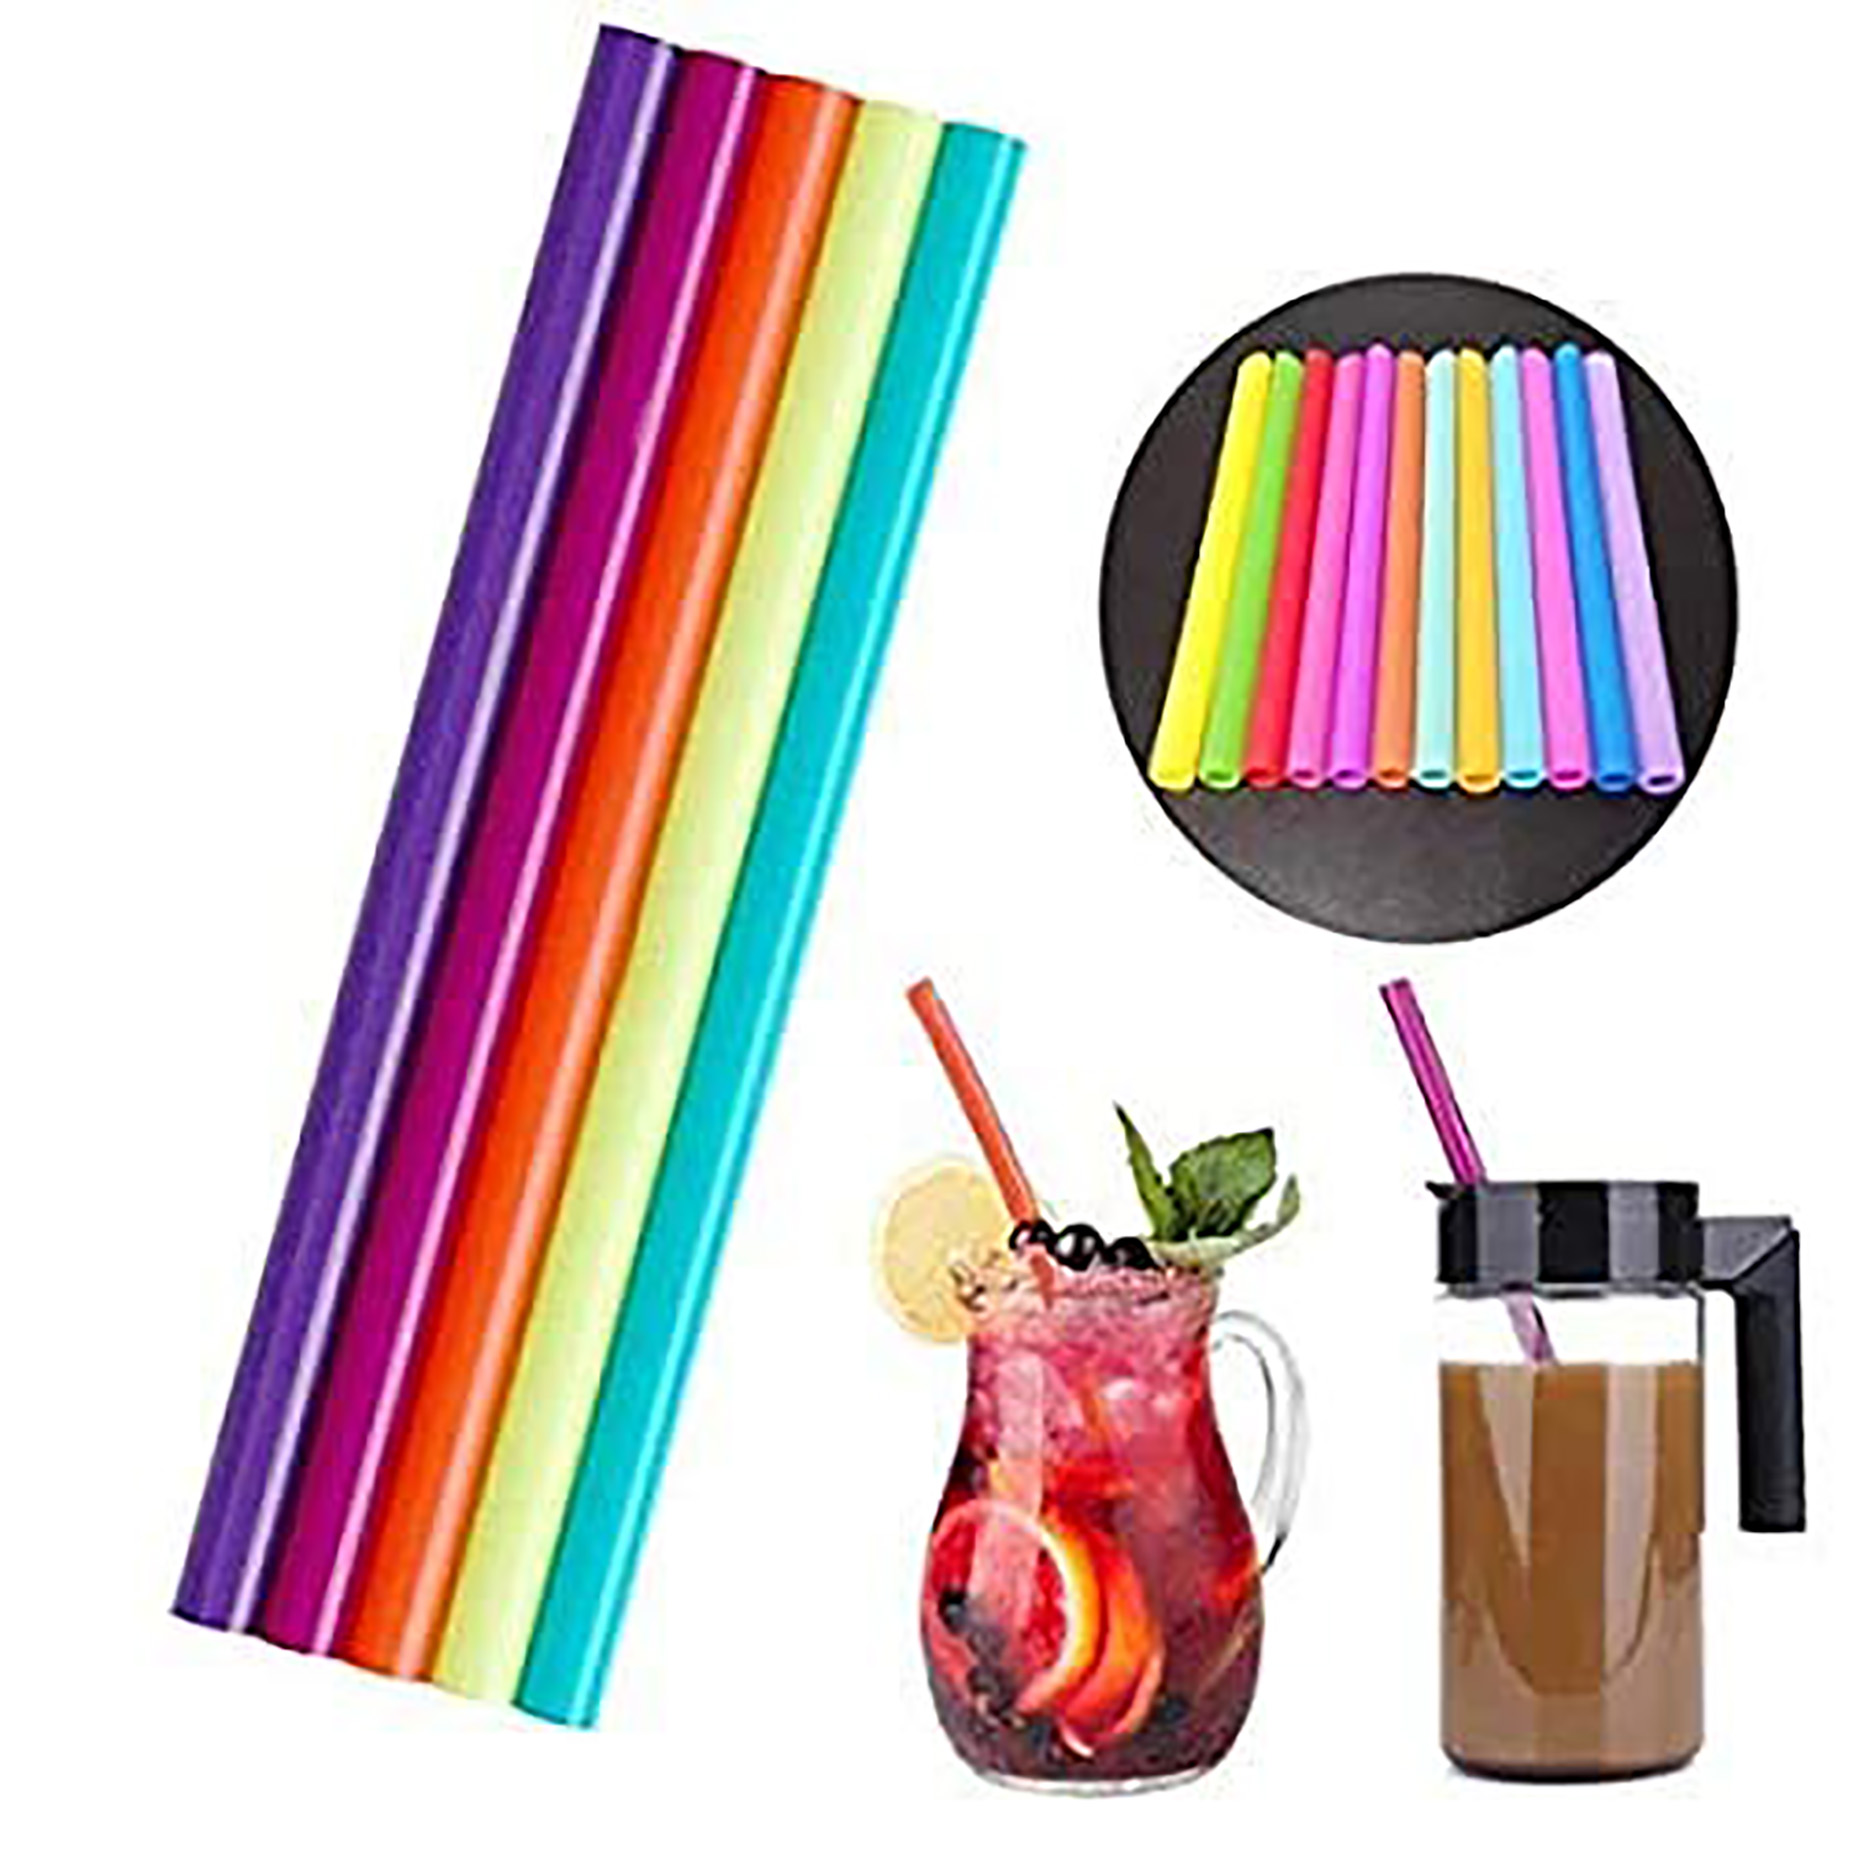 iLife | iLife Reusable Smoothie Straws Long Extra Wide Fat Silicone Straws for Drinking Bubble Tea, Milkshakes, Set of 6 with Cleaning Brush (Small)